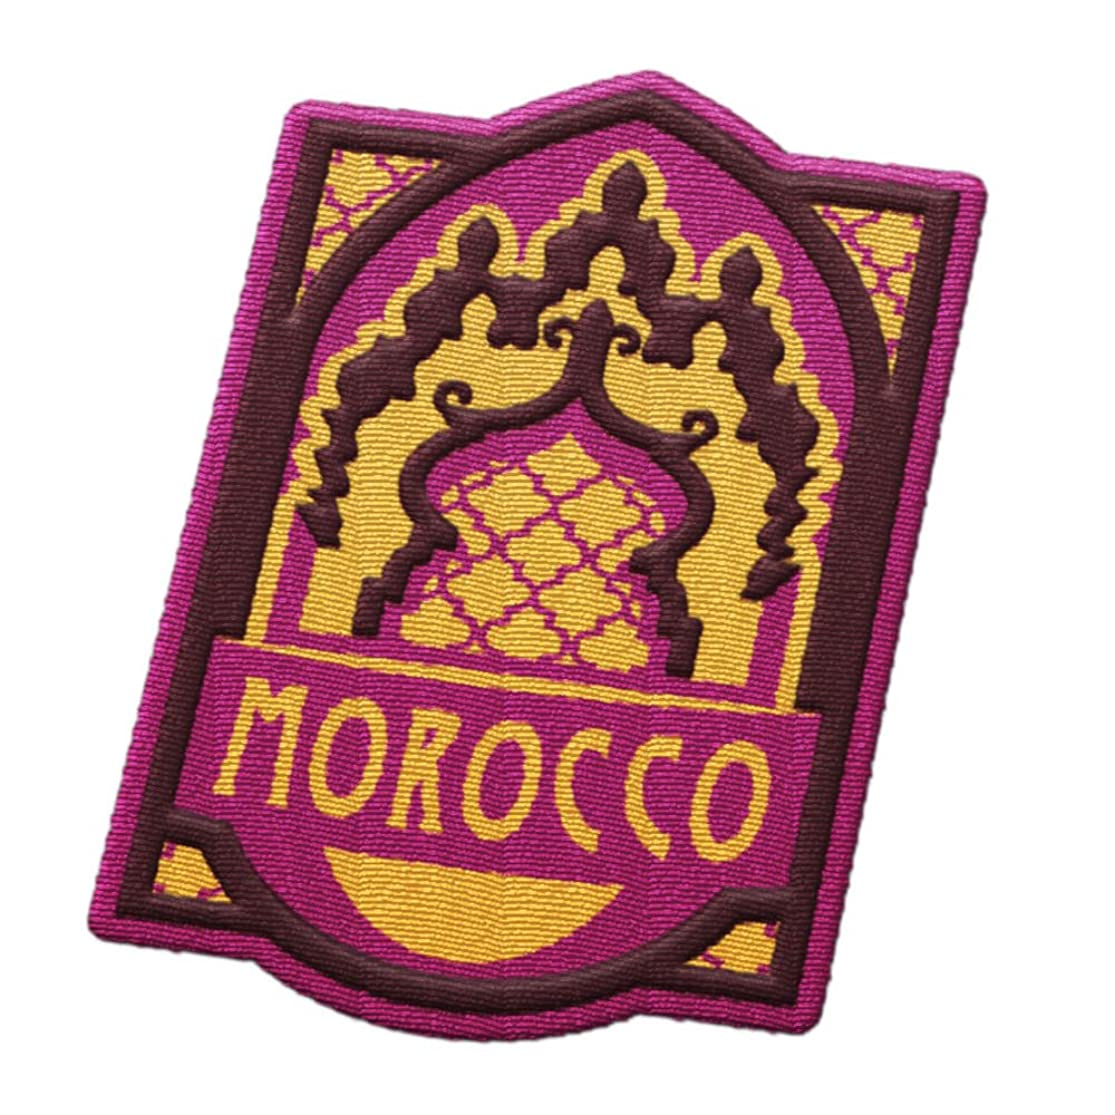 Morocco Travel Patch - Moroccan gates / Casablanca or Tangiers or Marakesh / Great souvenir for backpacks and luggage / Backpacking and travelling badge. mnsnydxr3